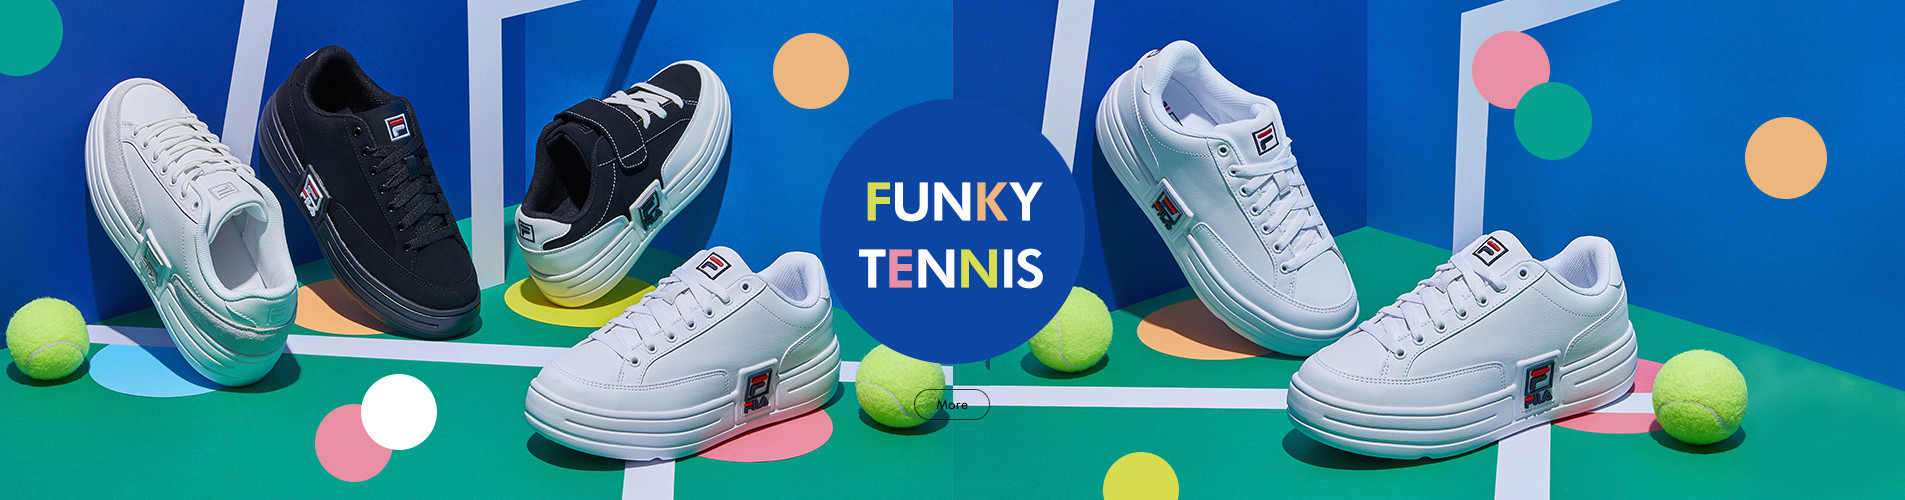 FUNKY TENNIS mobile